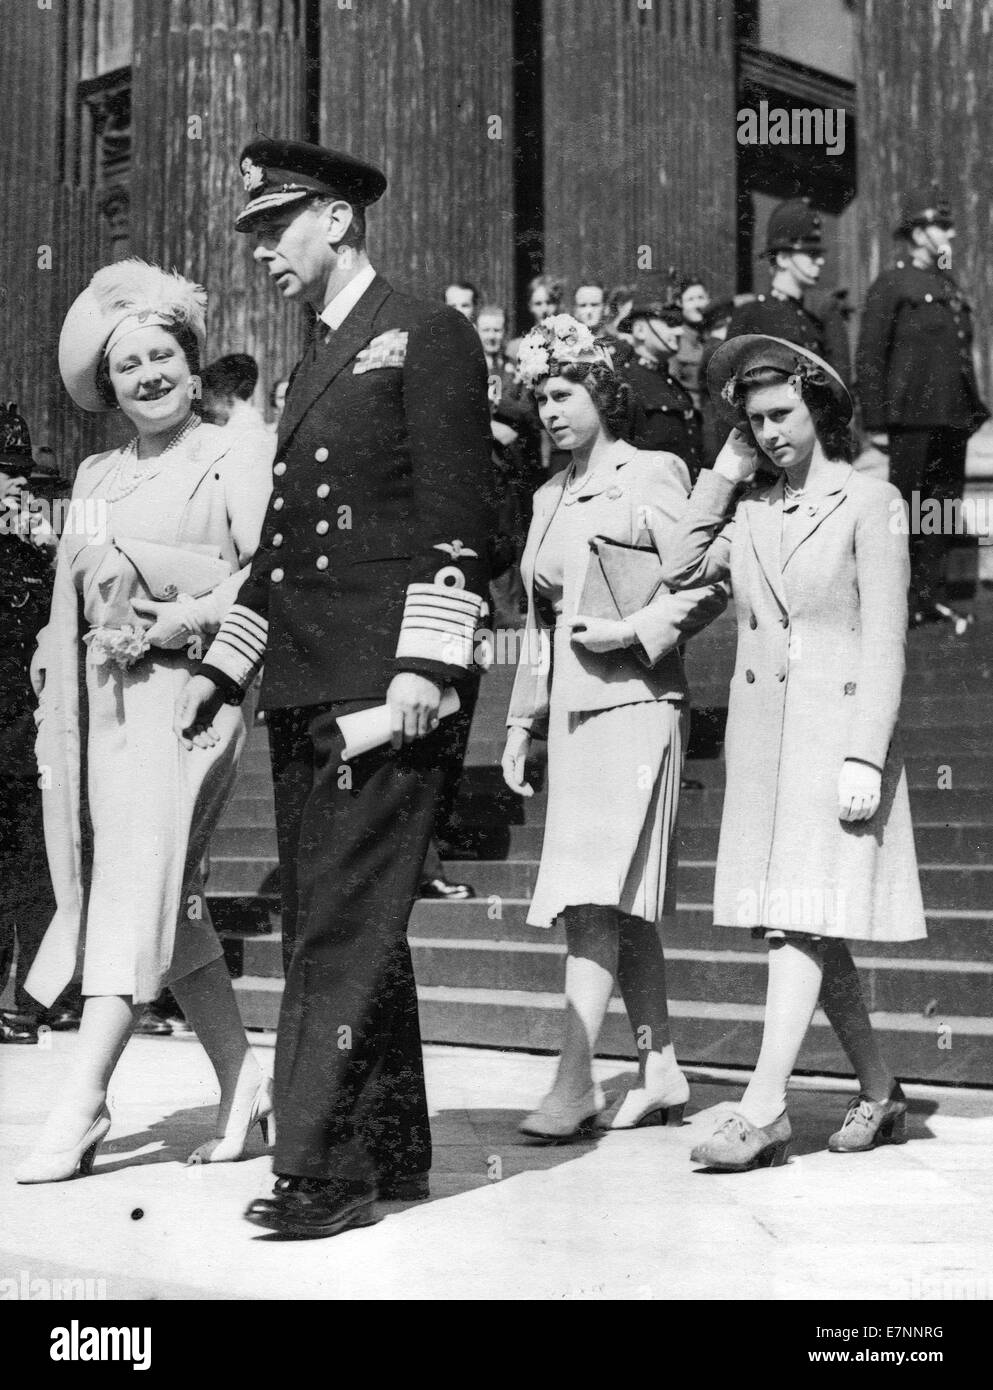 King George, Queen Elizabeth, Princess Margaret and Princess Elizabeth leaving St Paul's cathedral after WW11 - Stock Image